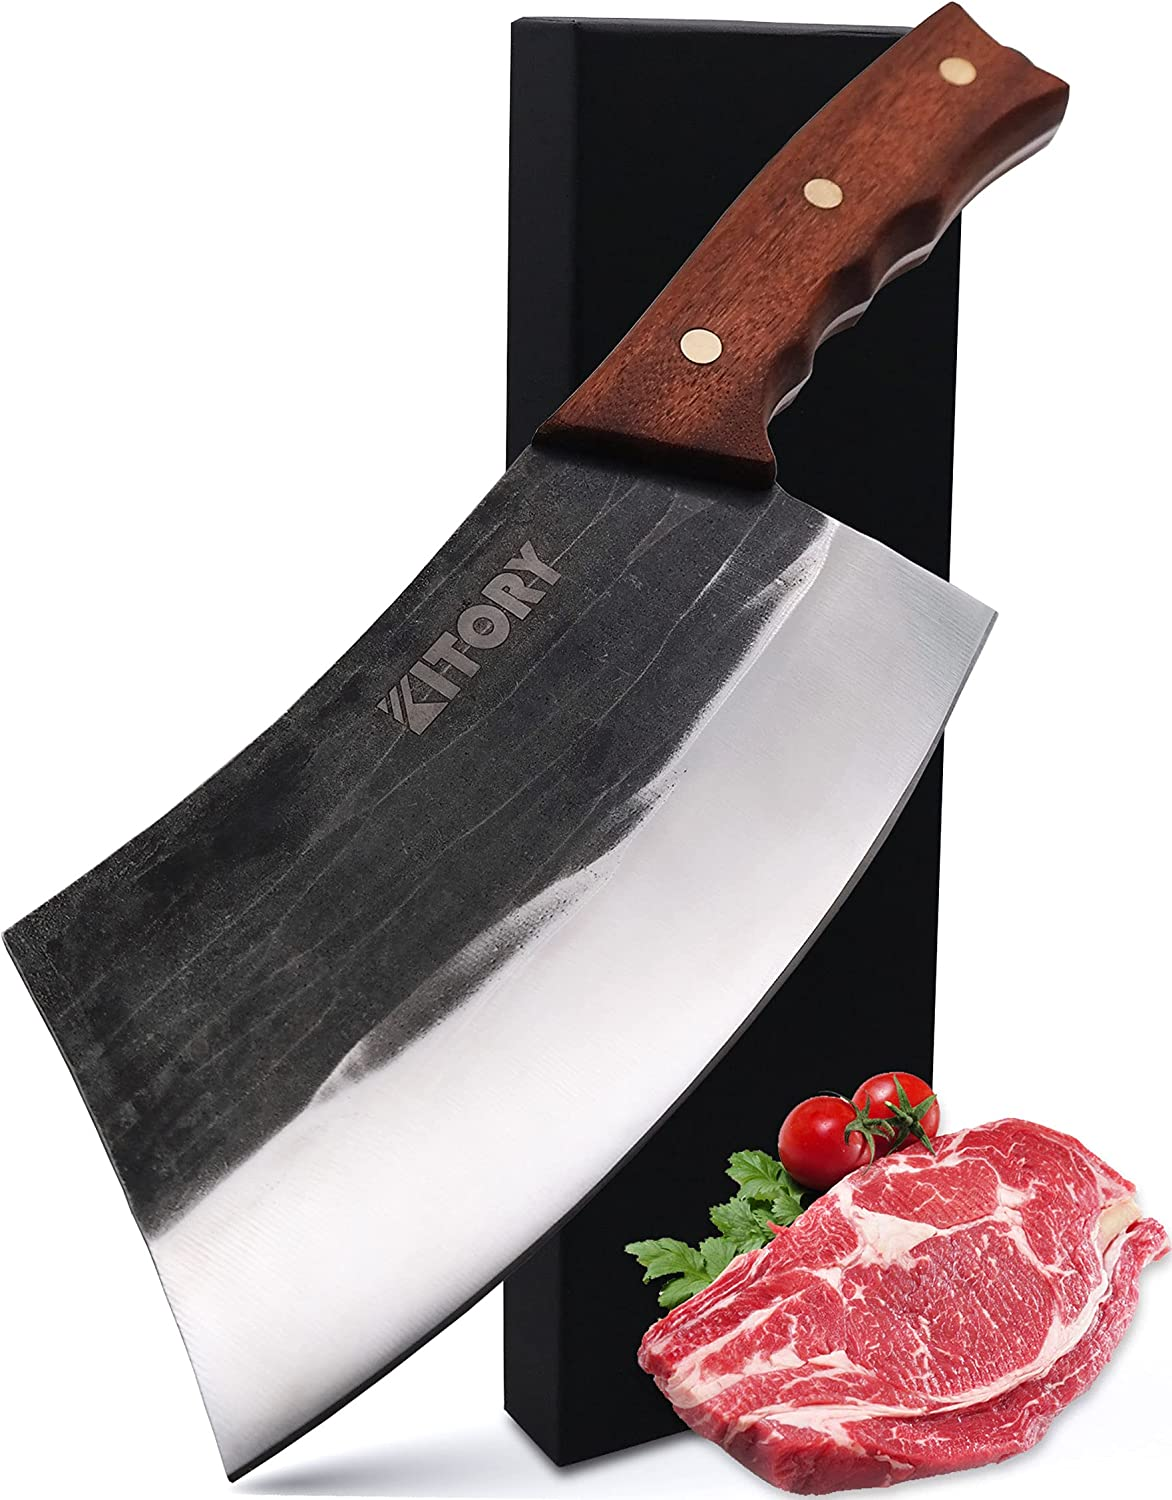 Kitory Cleaver Knife 7'' Forged Choppin Max 49% OFF Meat Vegetable Tampa Mall Sharp and